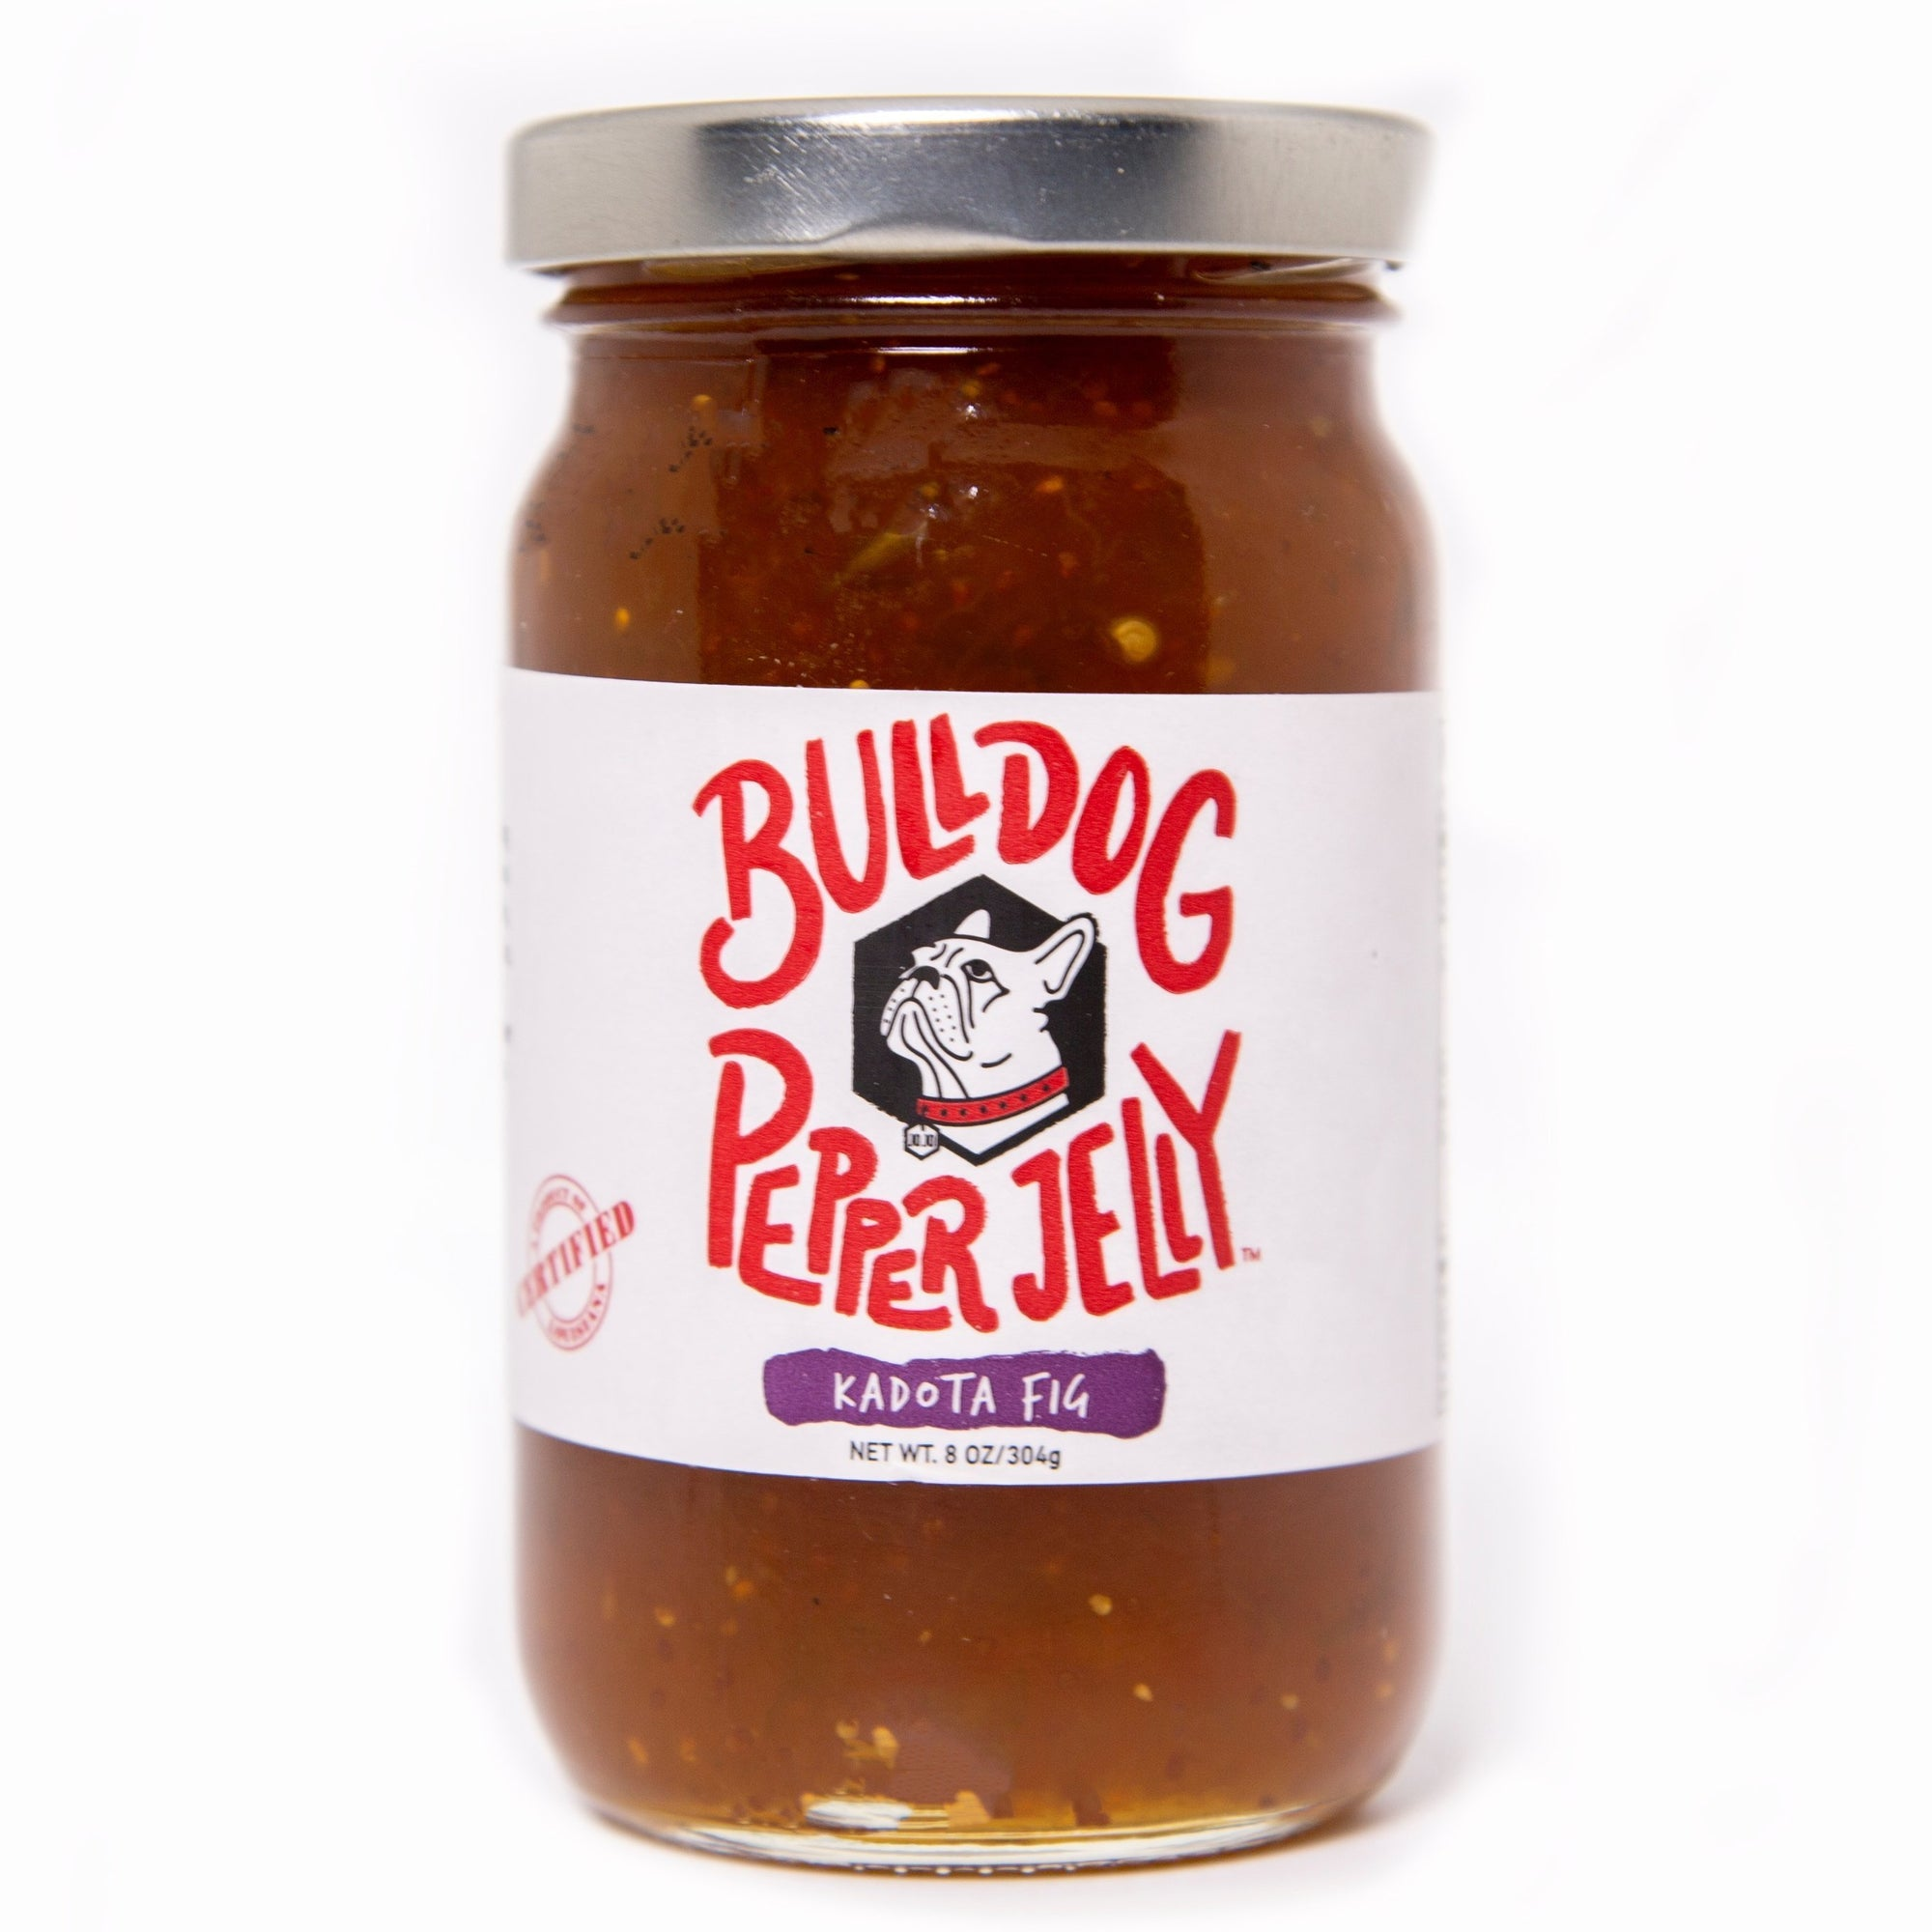 Bulldog Pepper Jelly Bulldog Kadota Fig Pepper Jelly